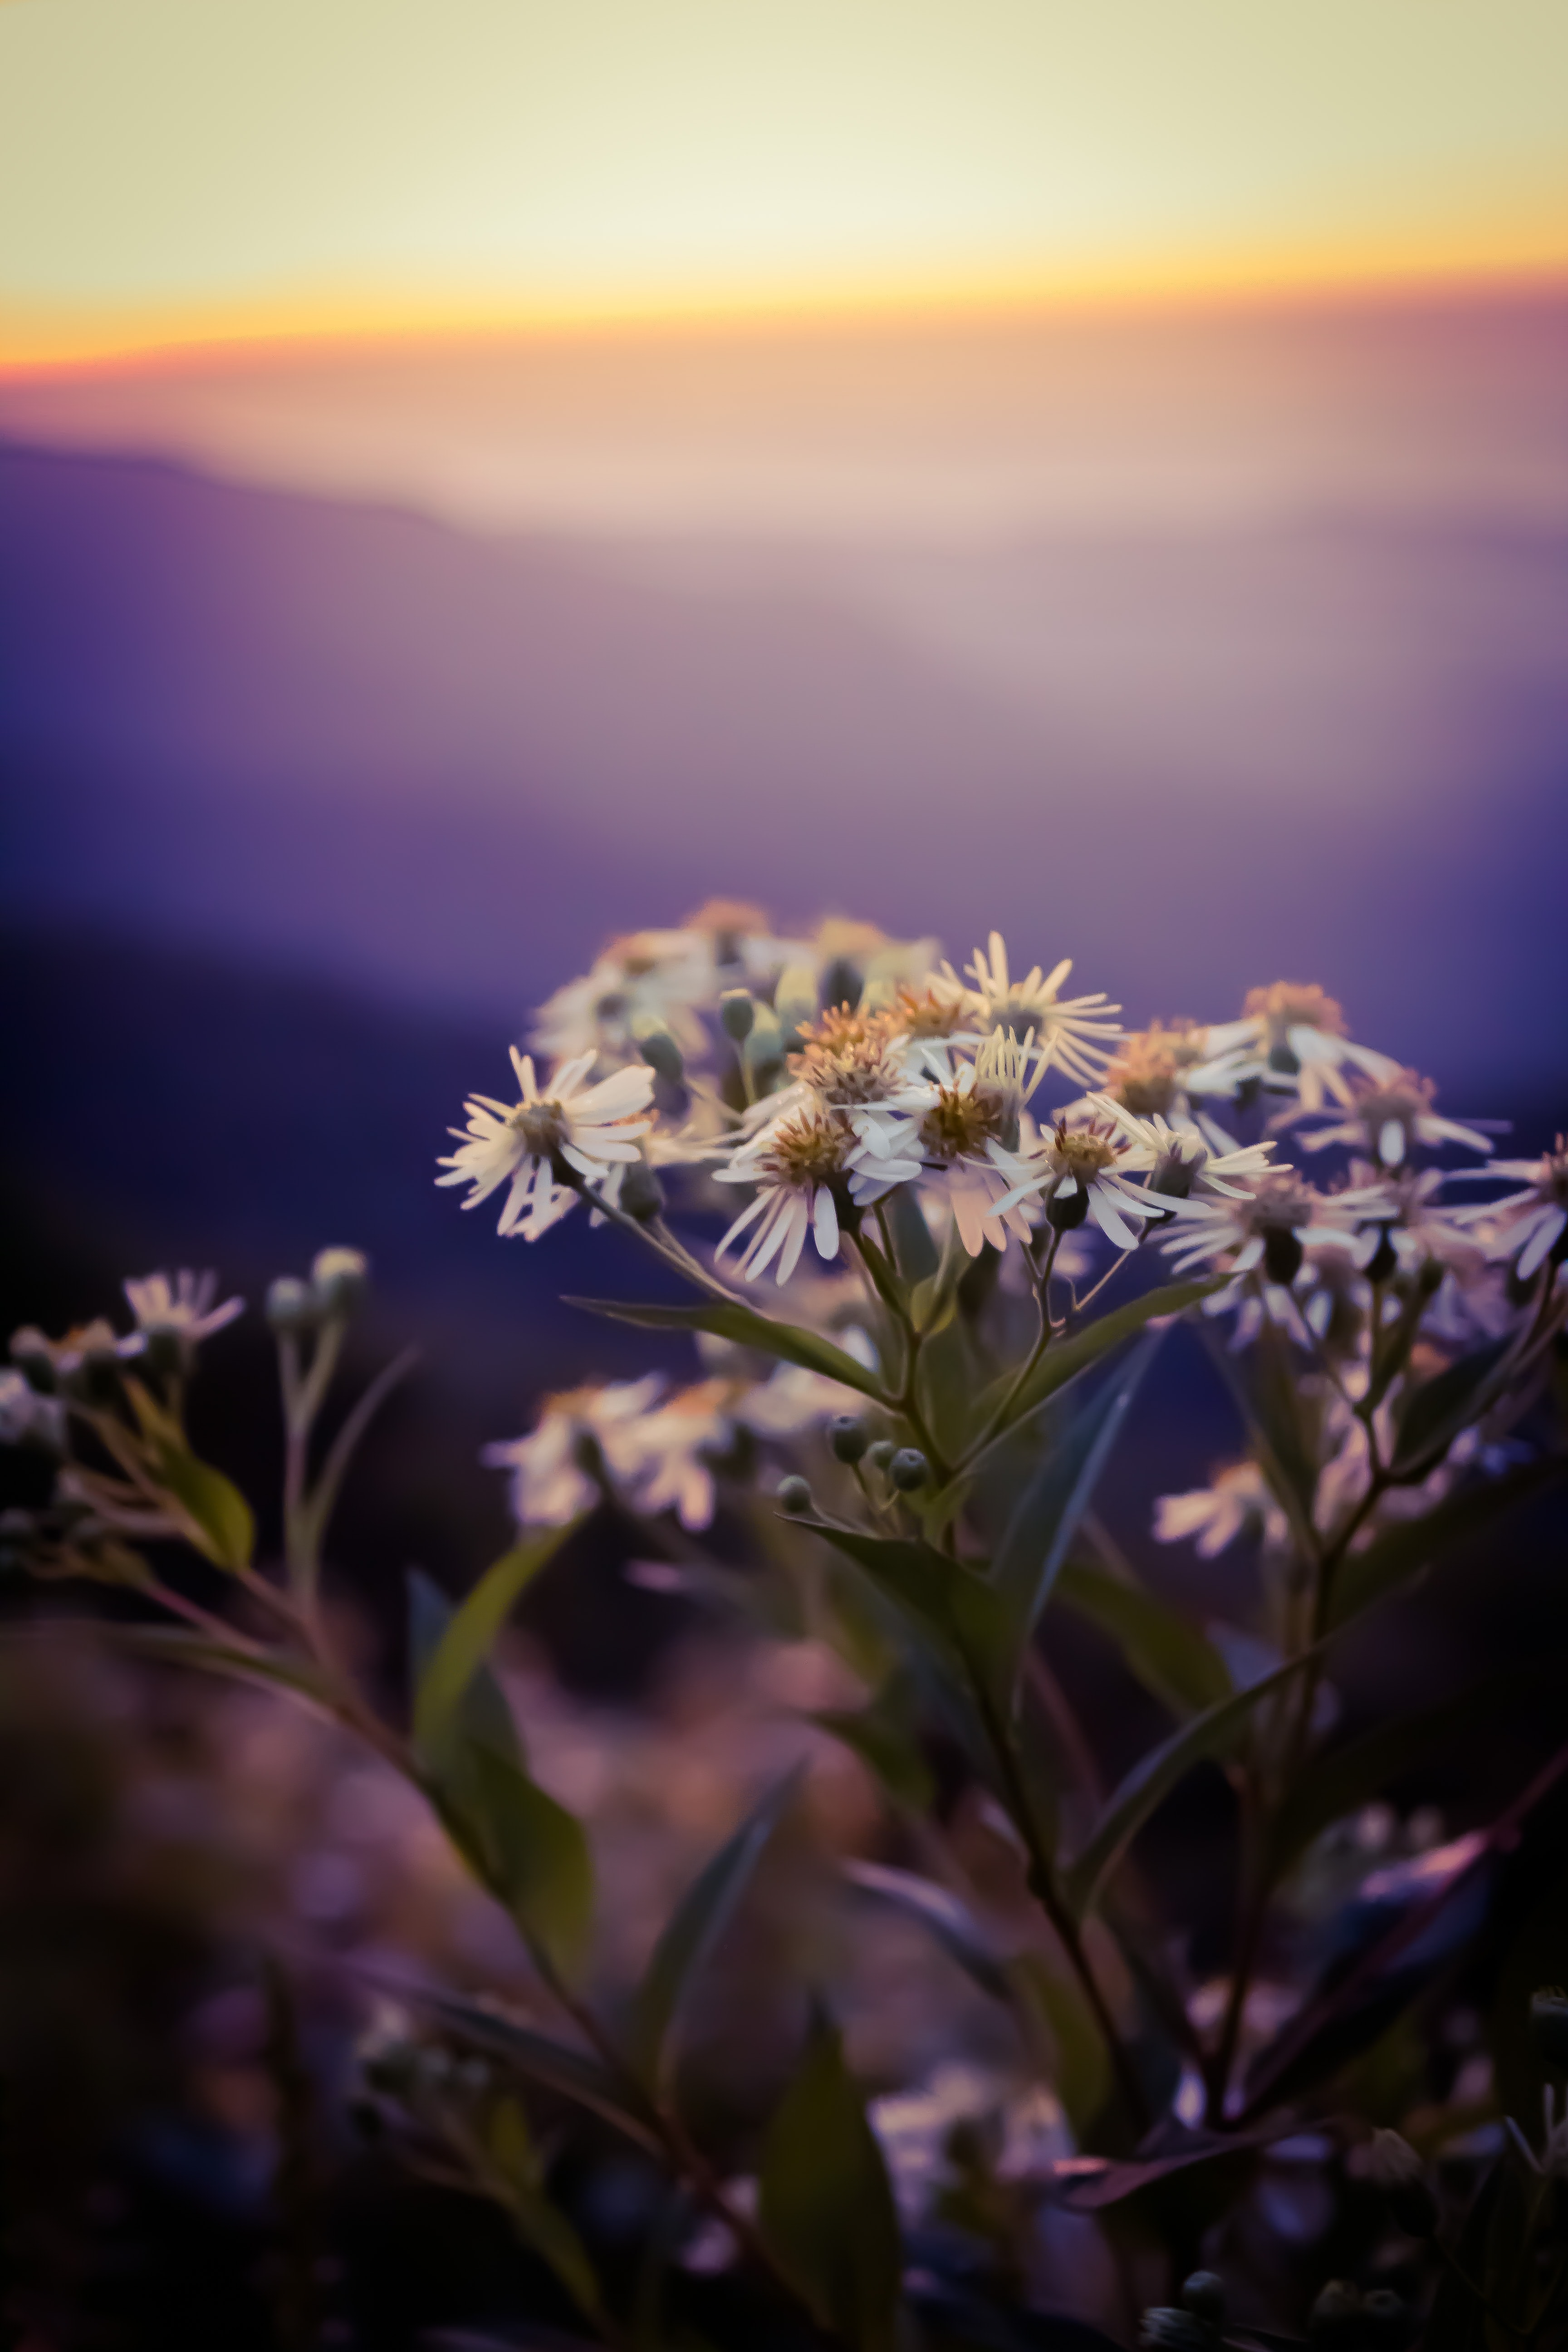 close photo of white flowers